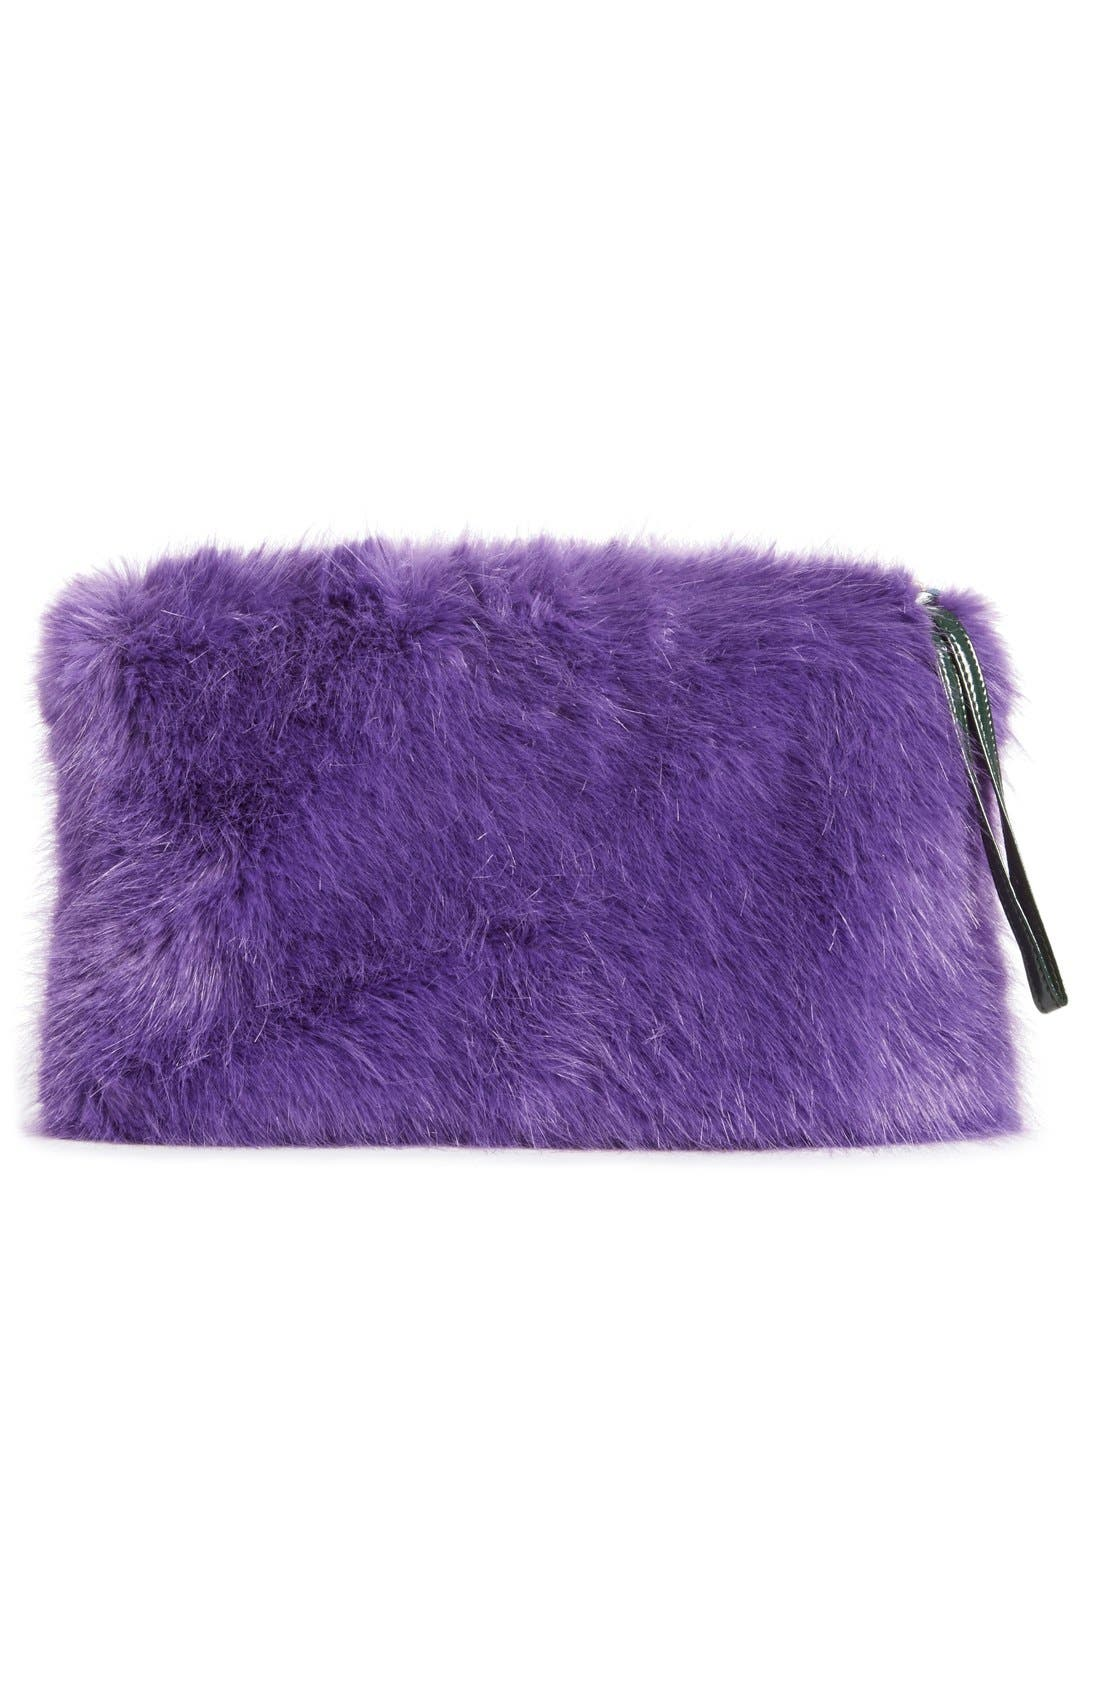 Alternate Image 2  - Shrimps 'Meadow' Faux Fur Clutch